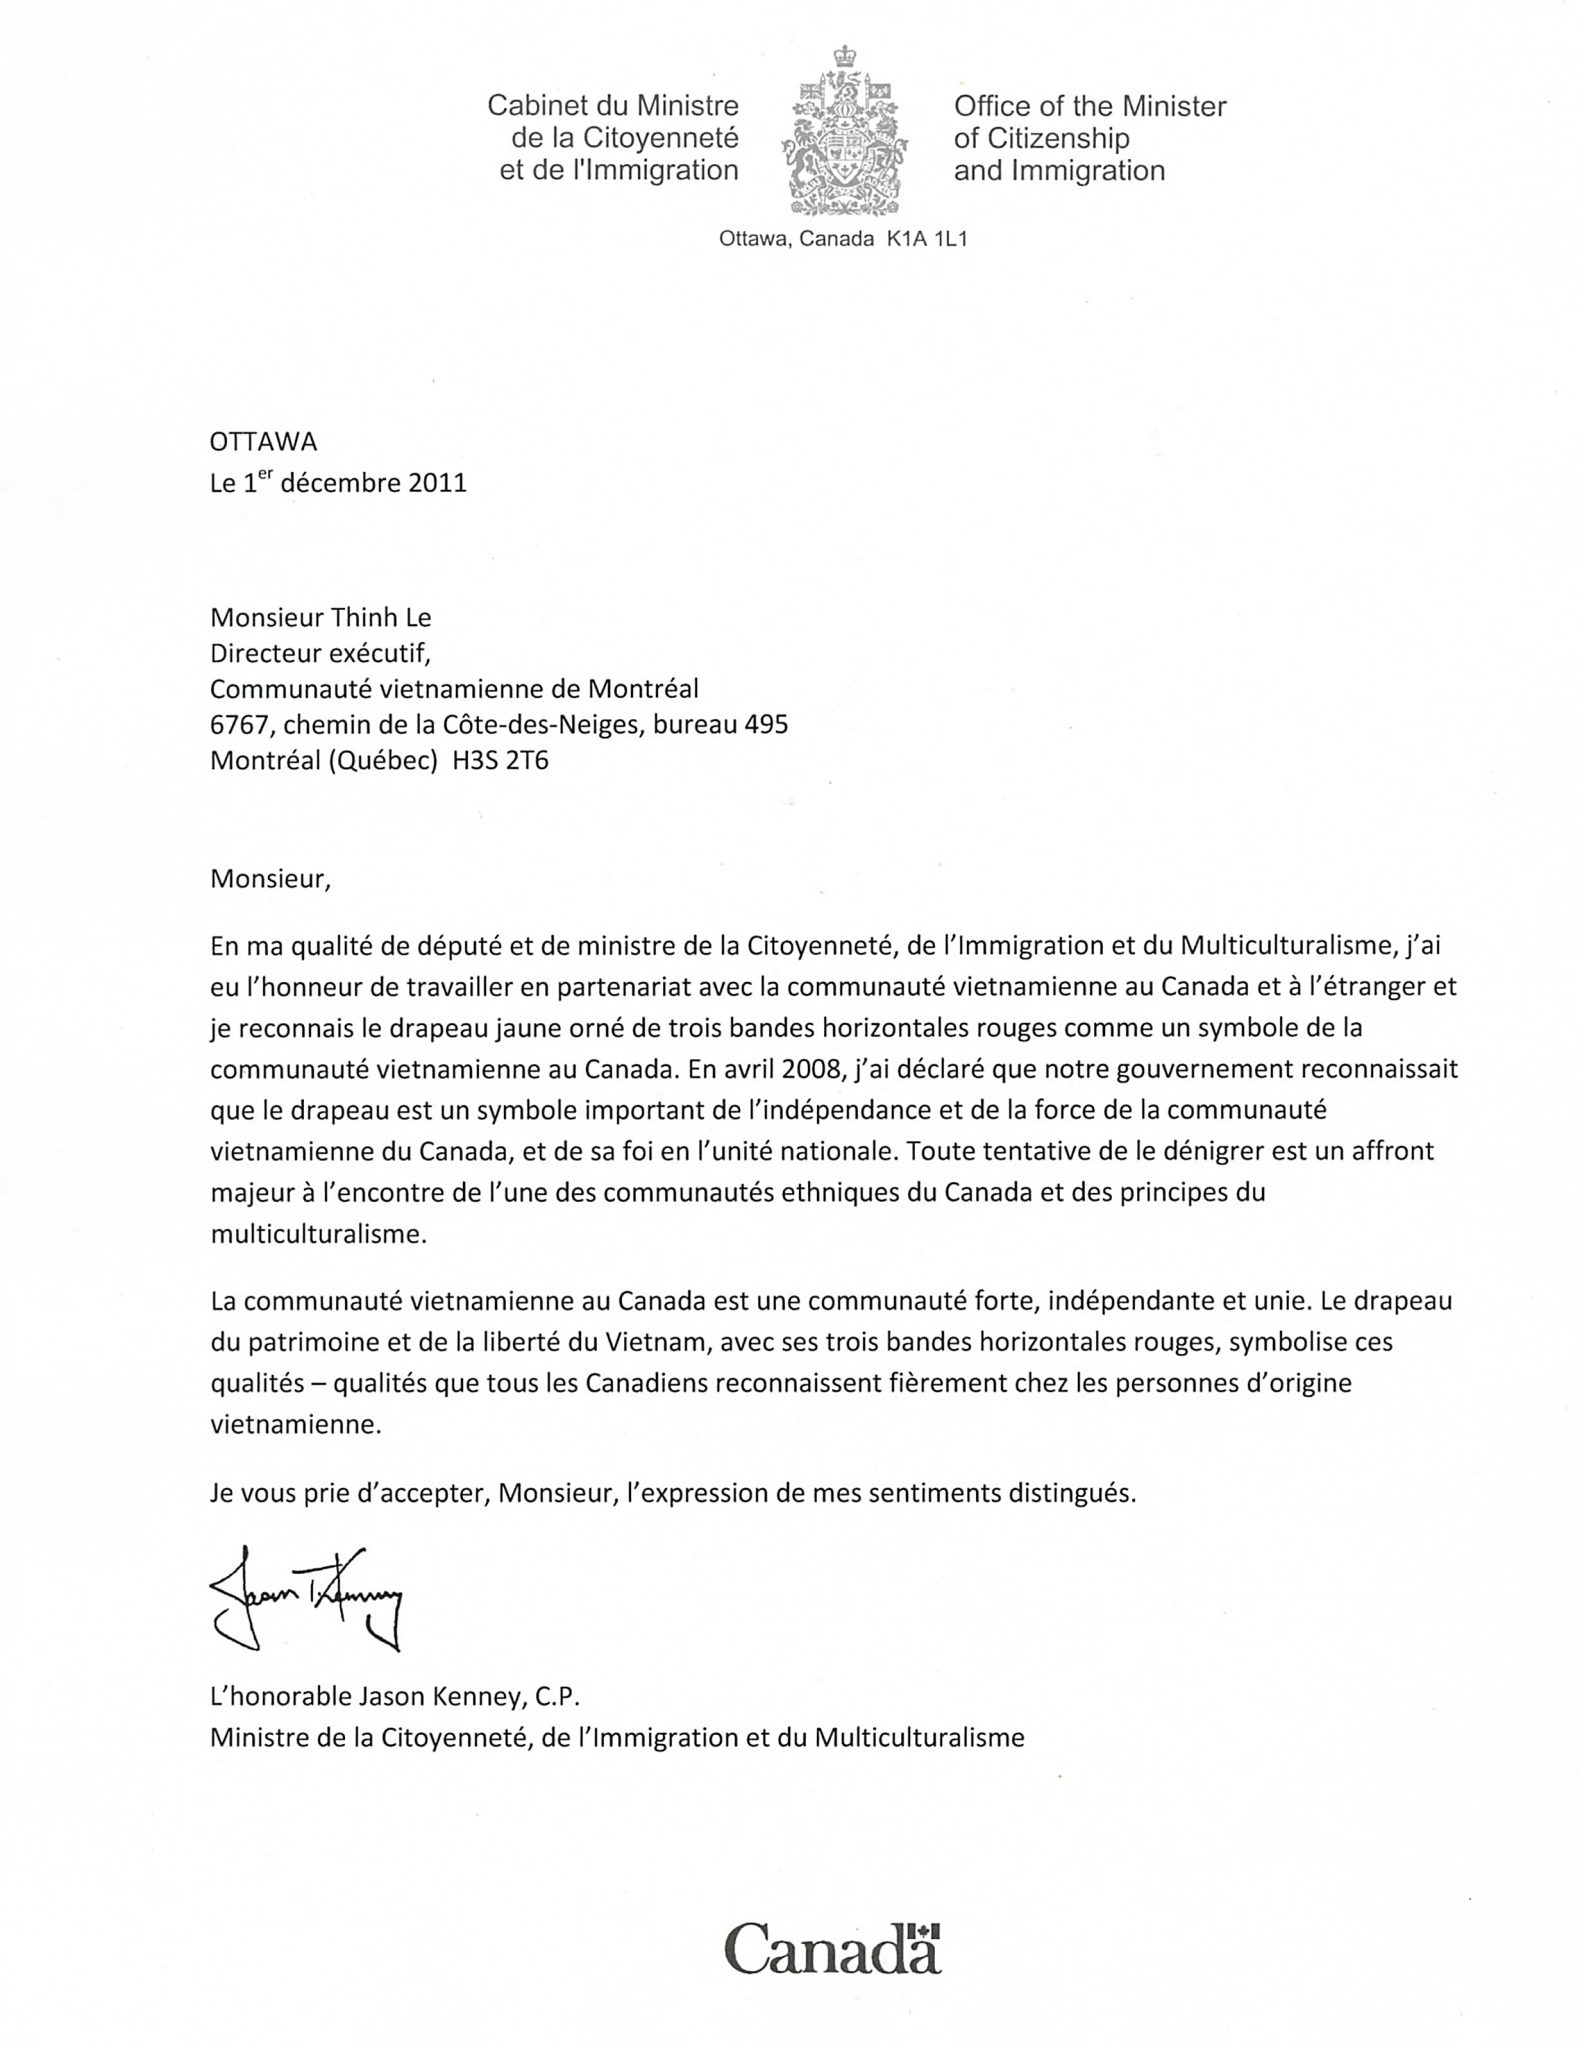 Letter of Minister Jason Kenney recognizing the Heritage and Freedom Flag